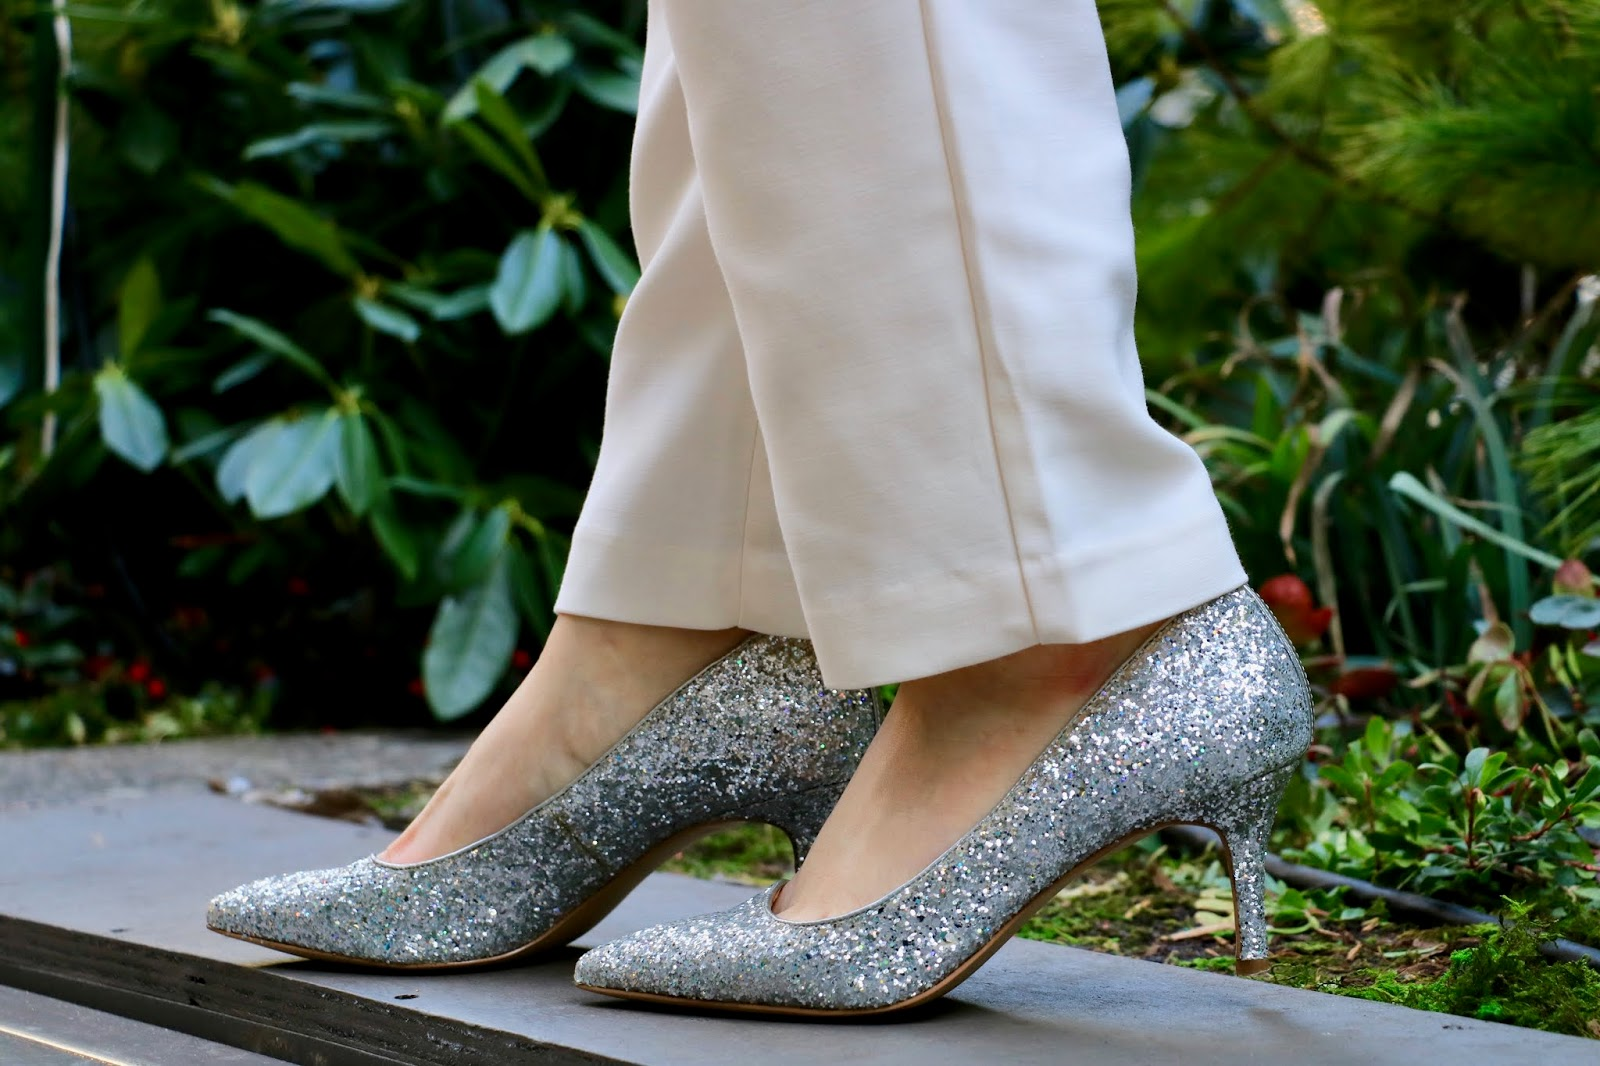 Nyc fashion blogger Kathleen Harper wearing silver glitter heels from Ann Taylor.